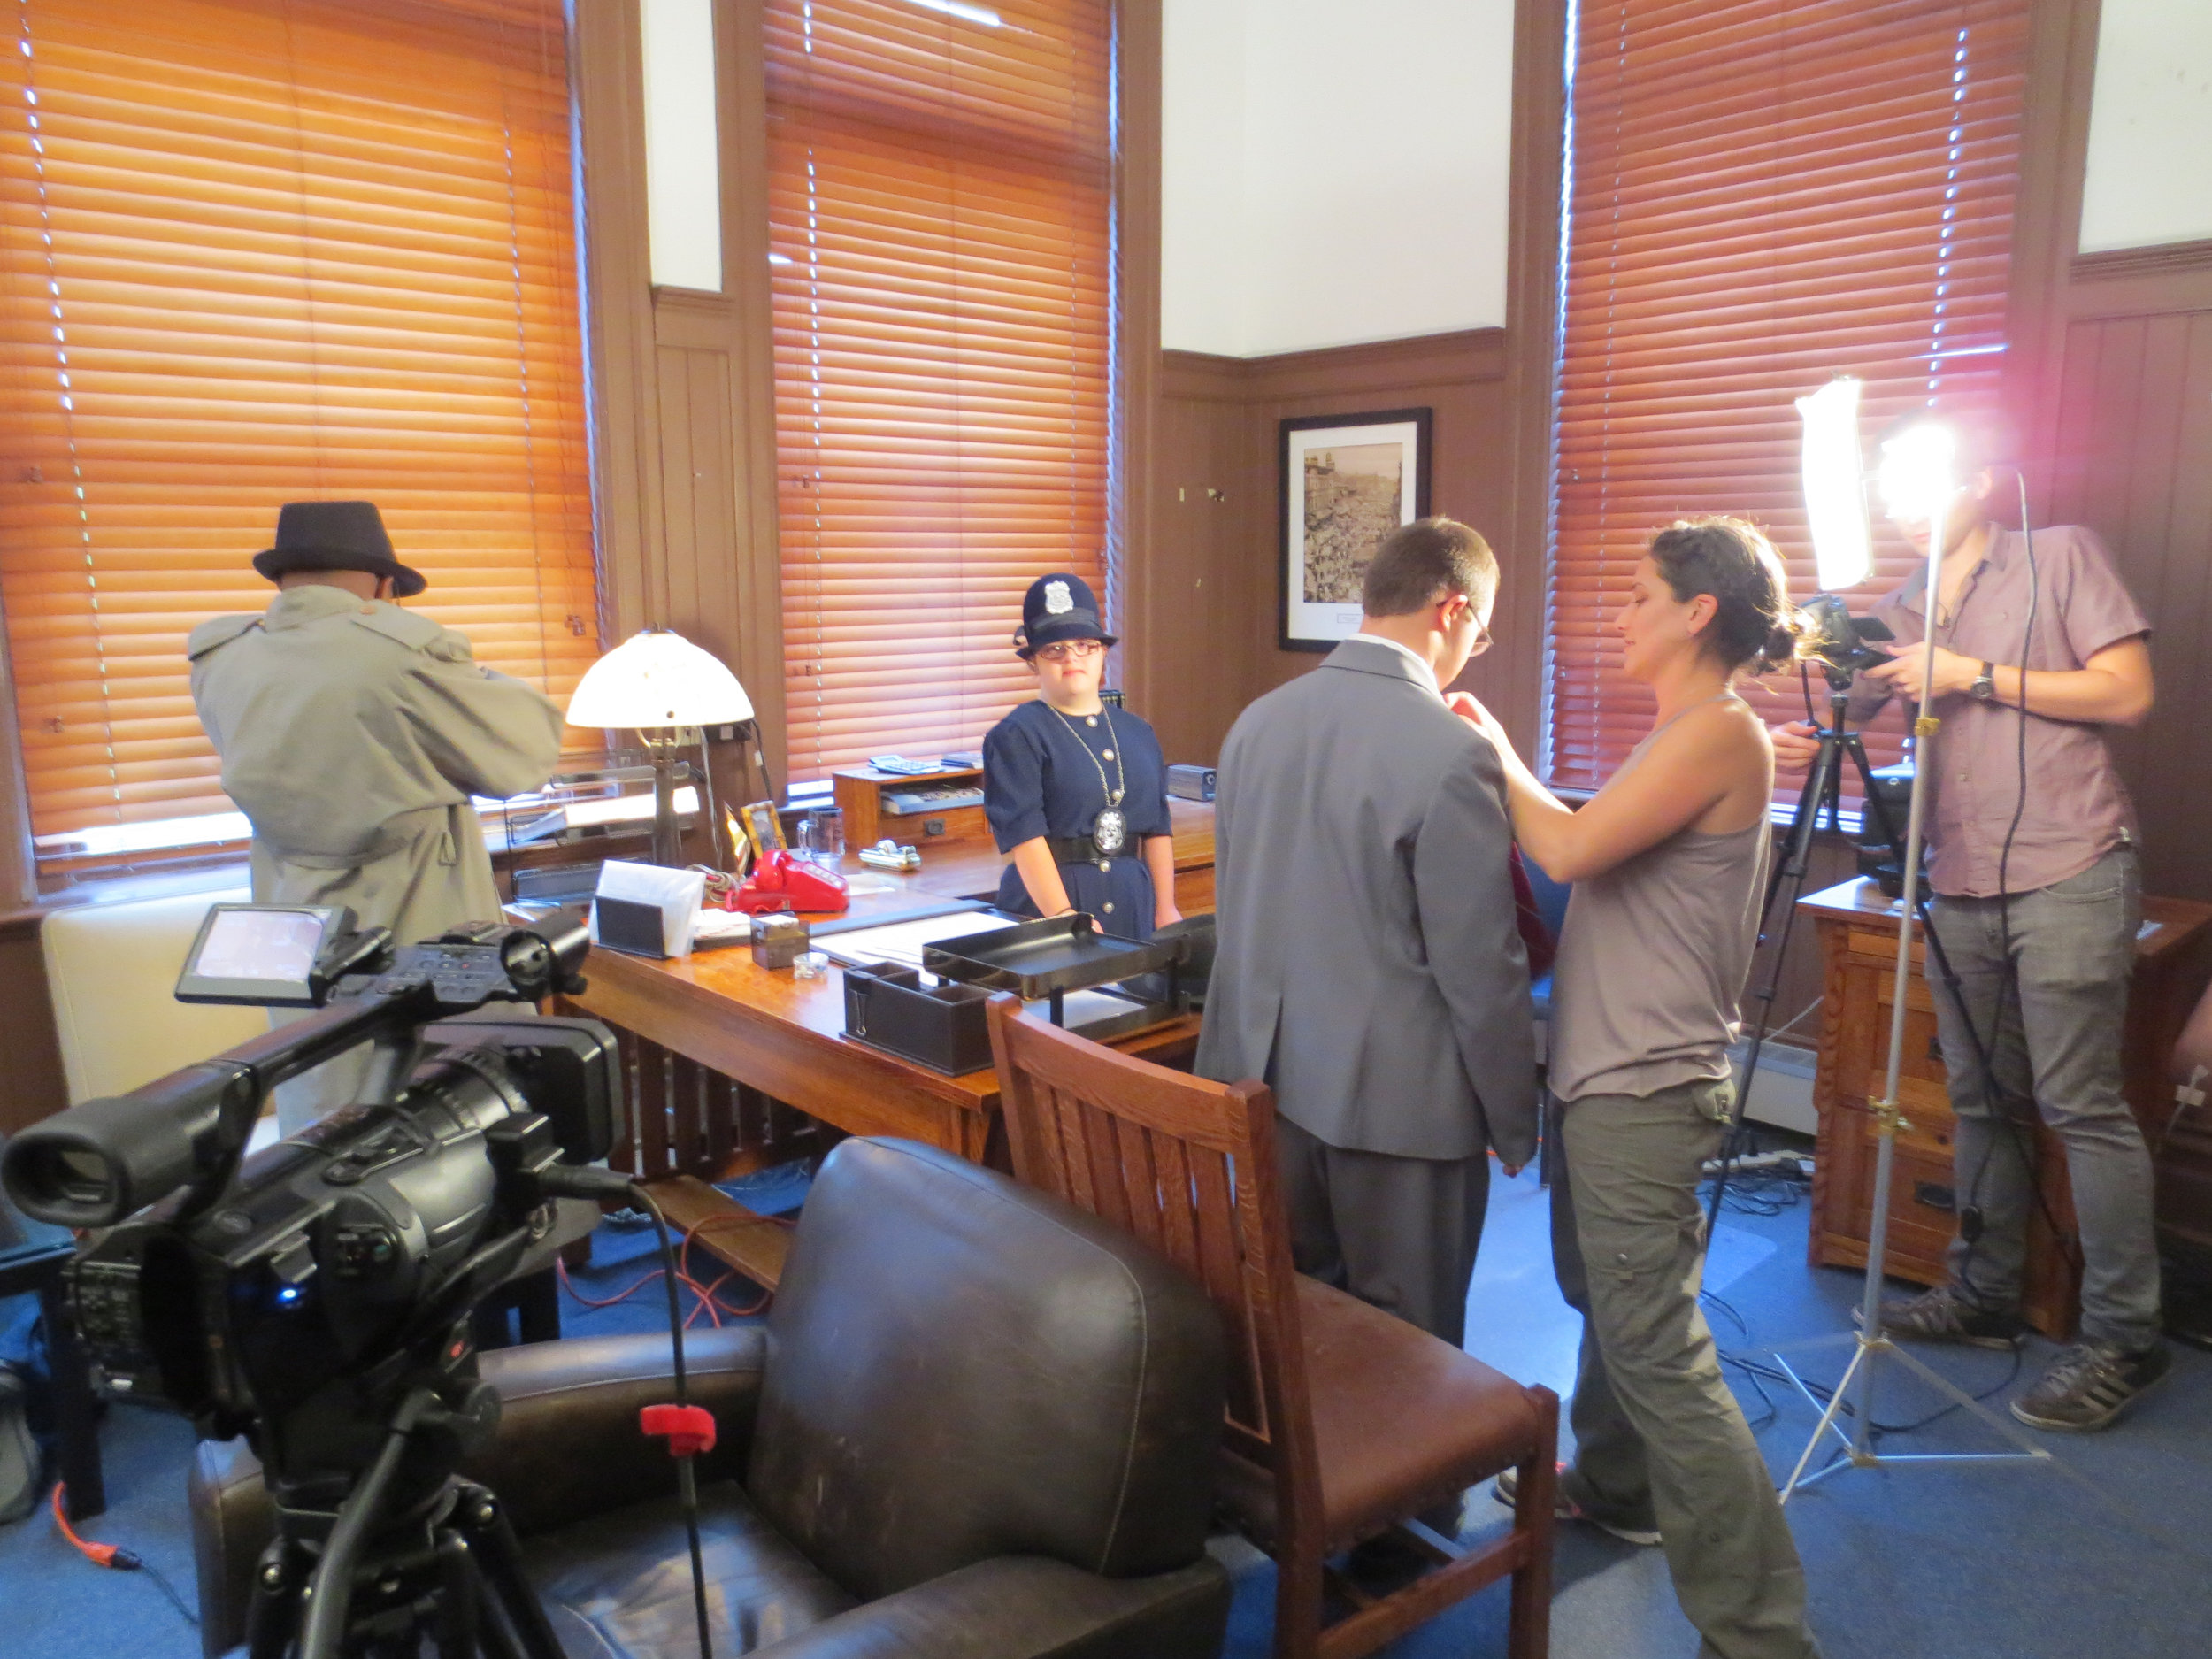 setting up between takes at the Historic Maxwell St. Police Station